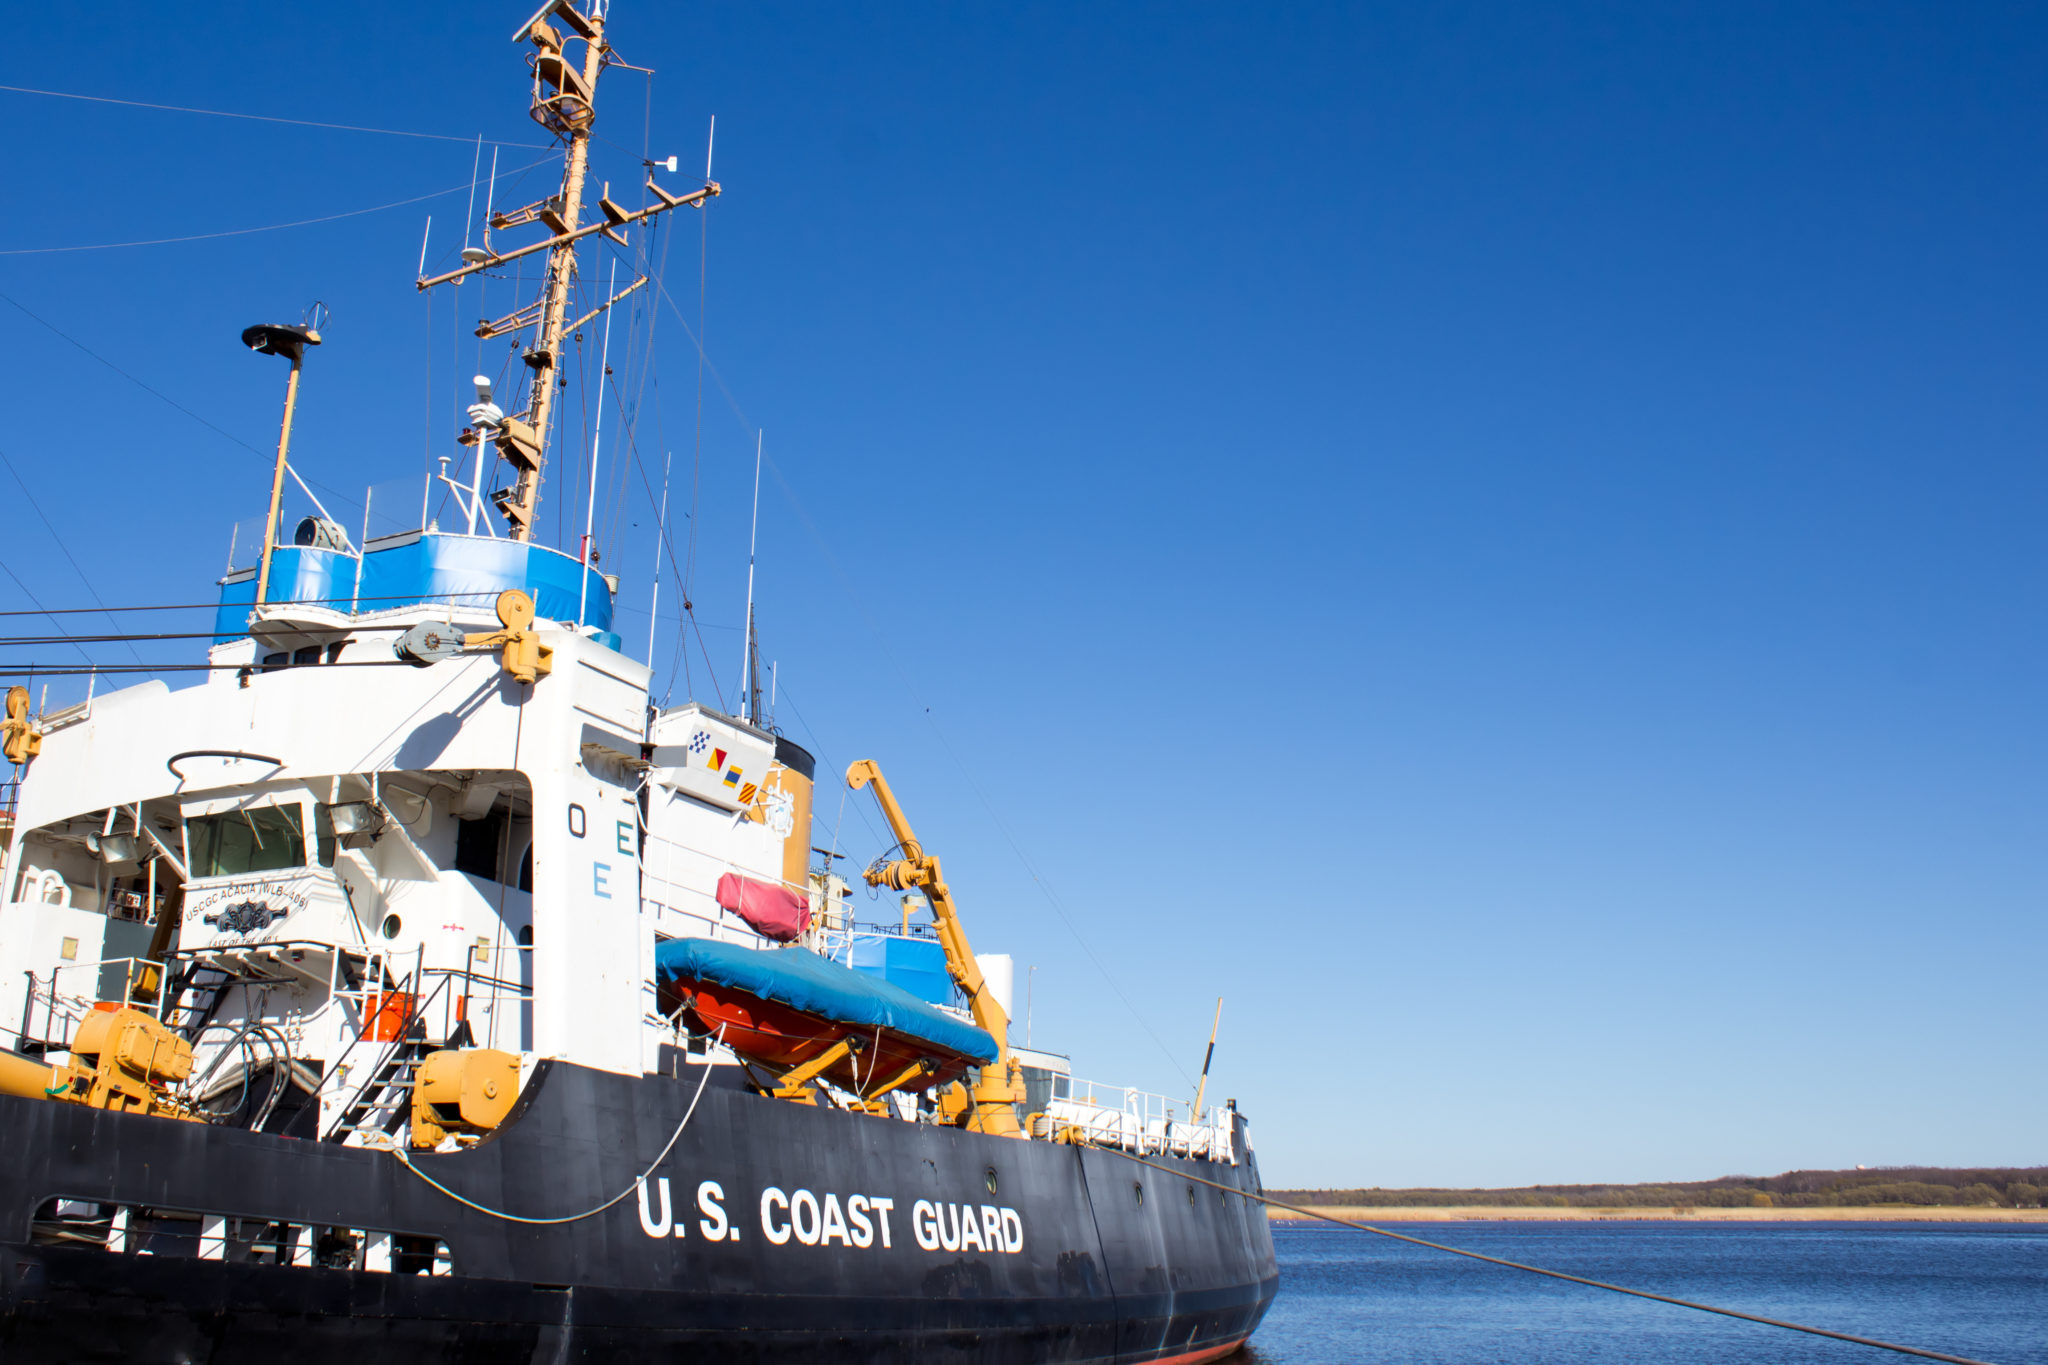 To Help Counter China, U.S. Turns to the Coast Guard